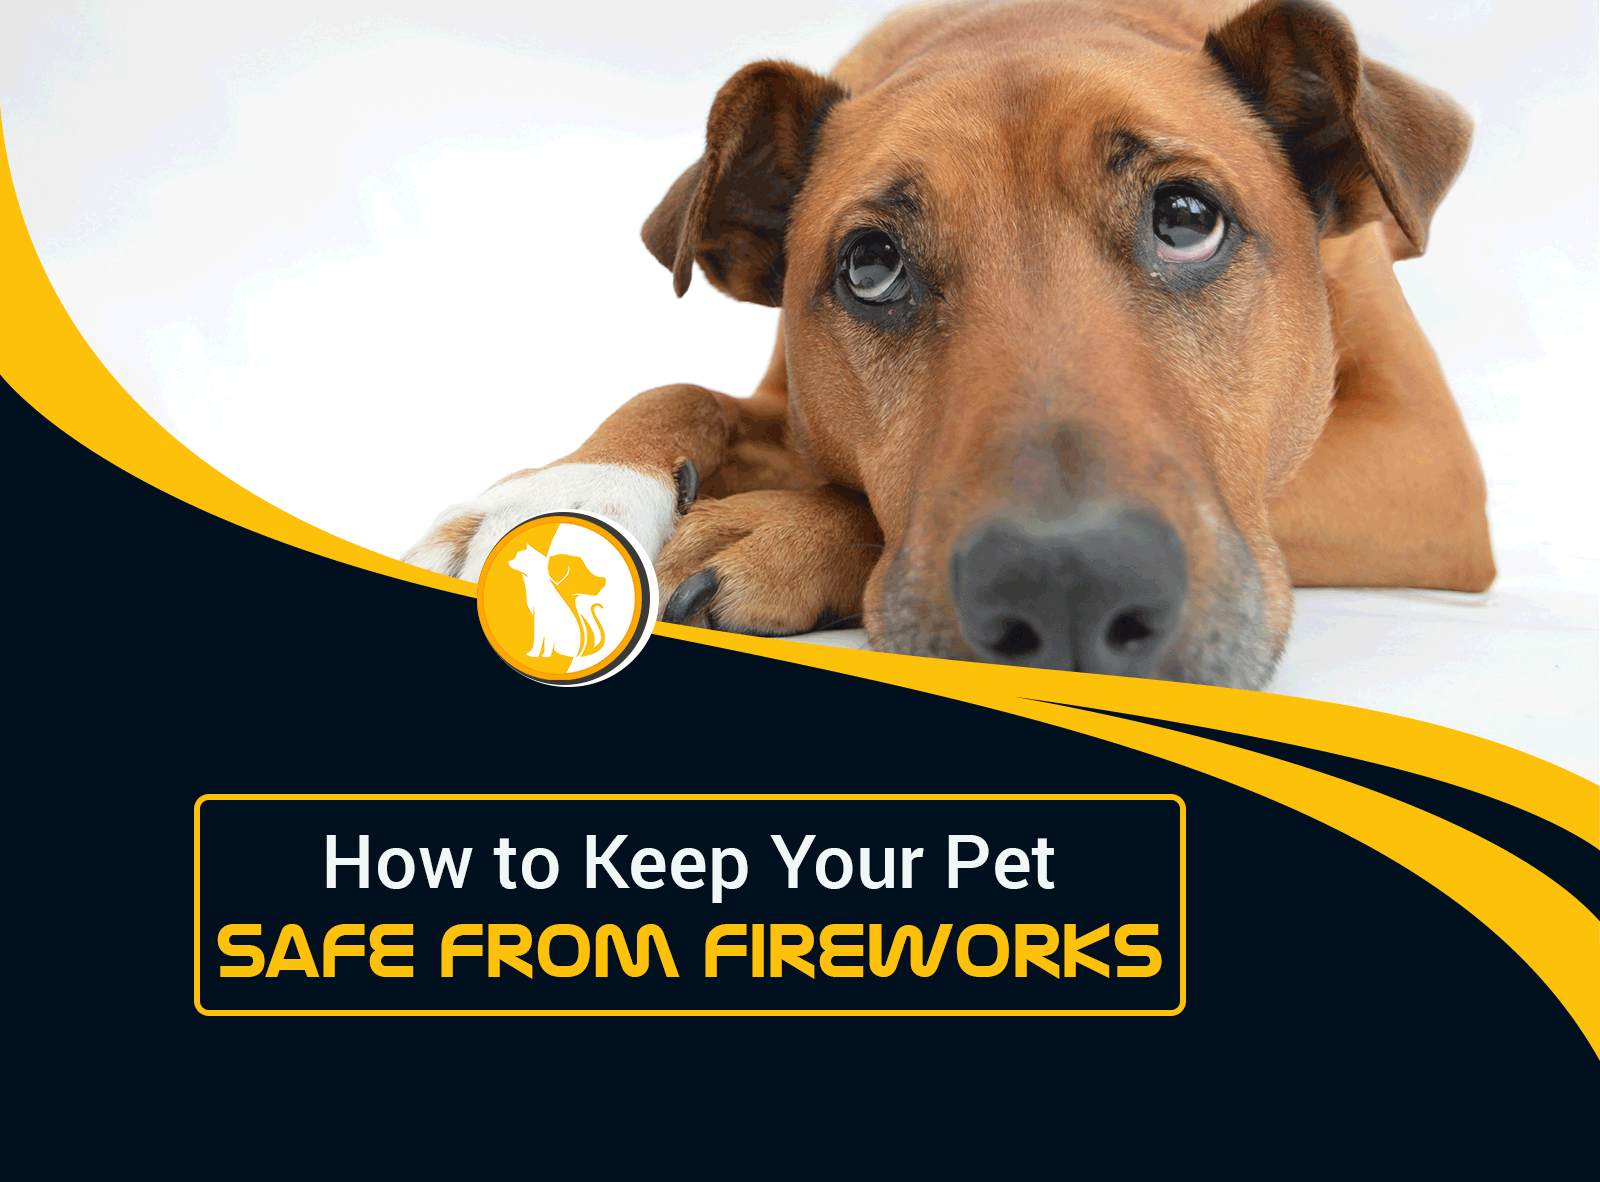 How to Keep Your Pet Safe from Fireworks